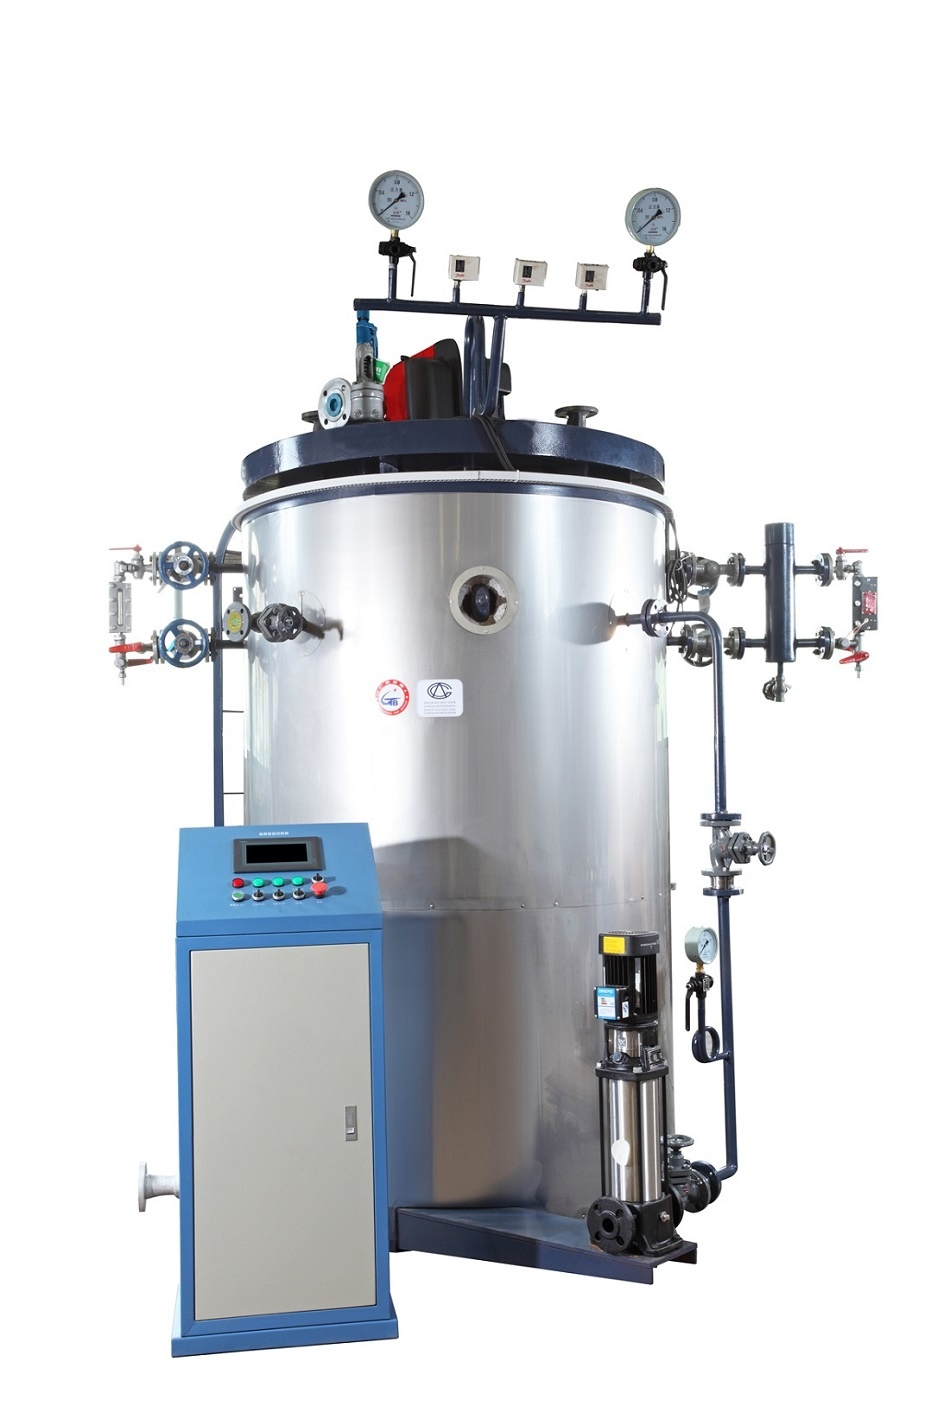 Steam Boiler Feedwater Storage Technology 10 Executive Summary 20 The role of the deaerator in steam systems 30 The need to remove dissolved oxygen and other gases